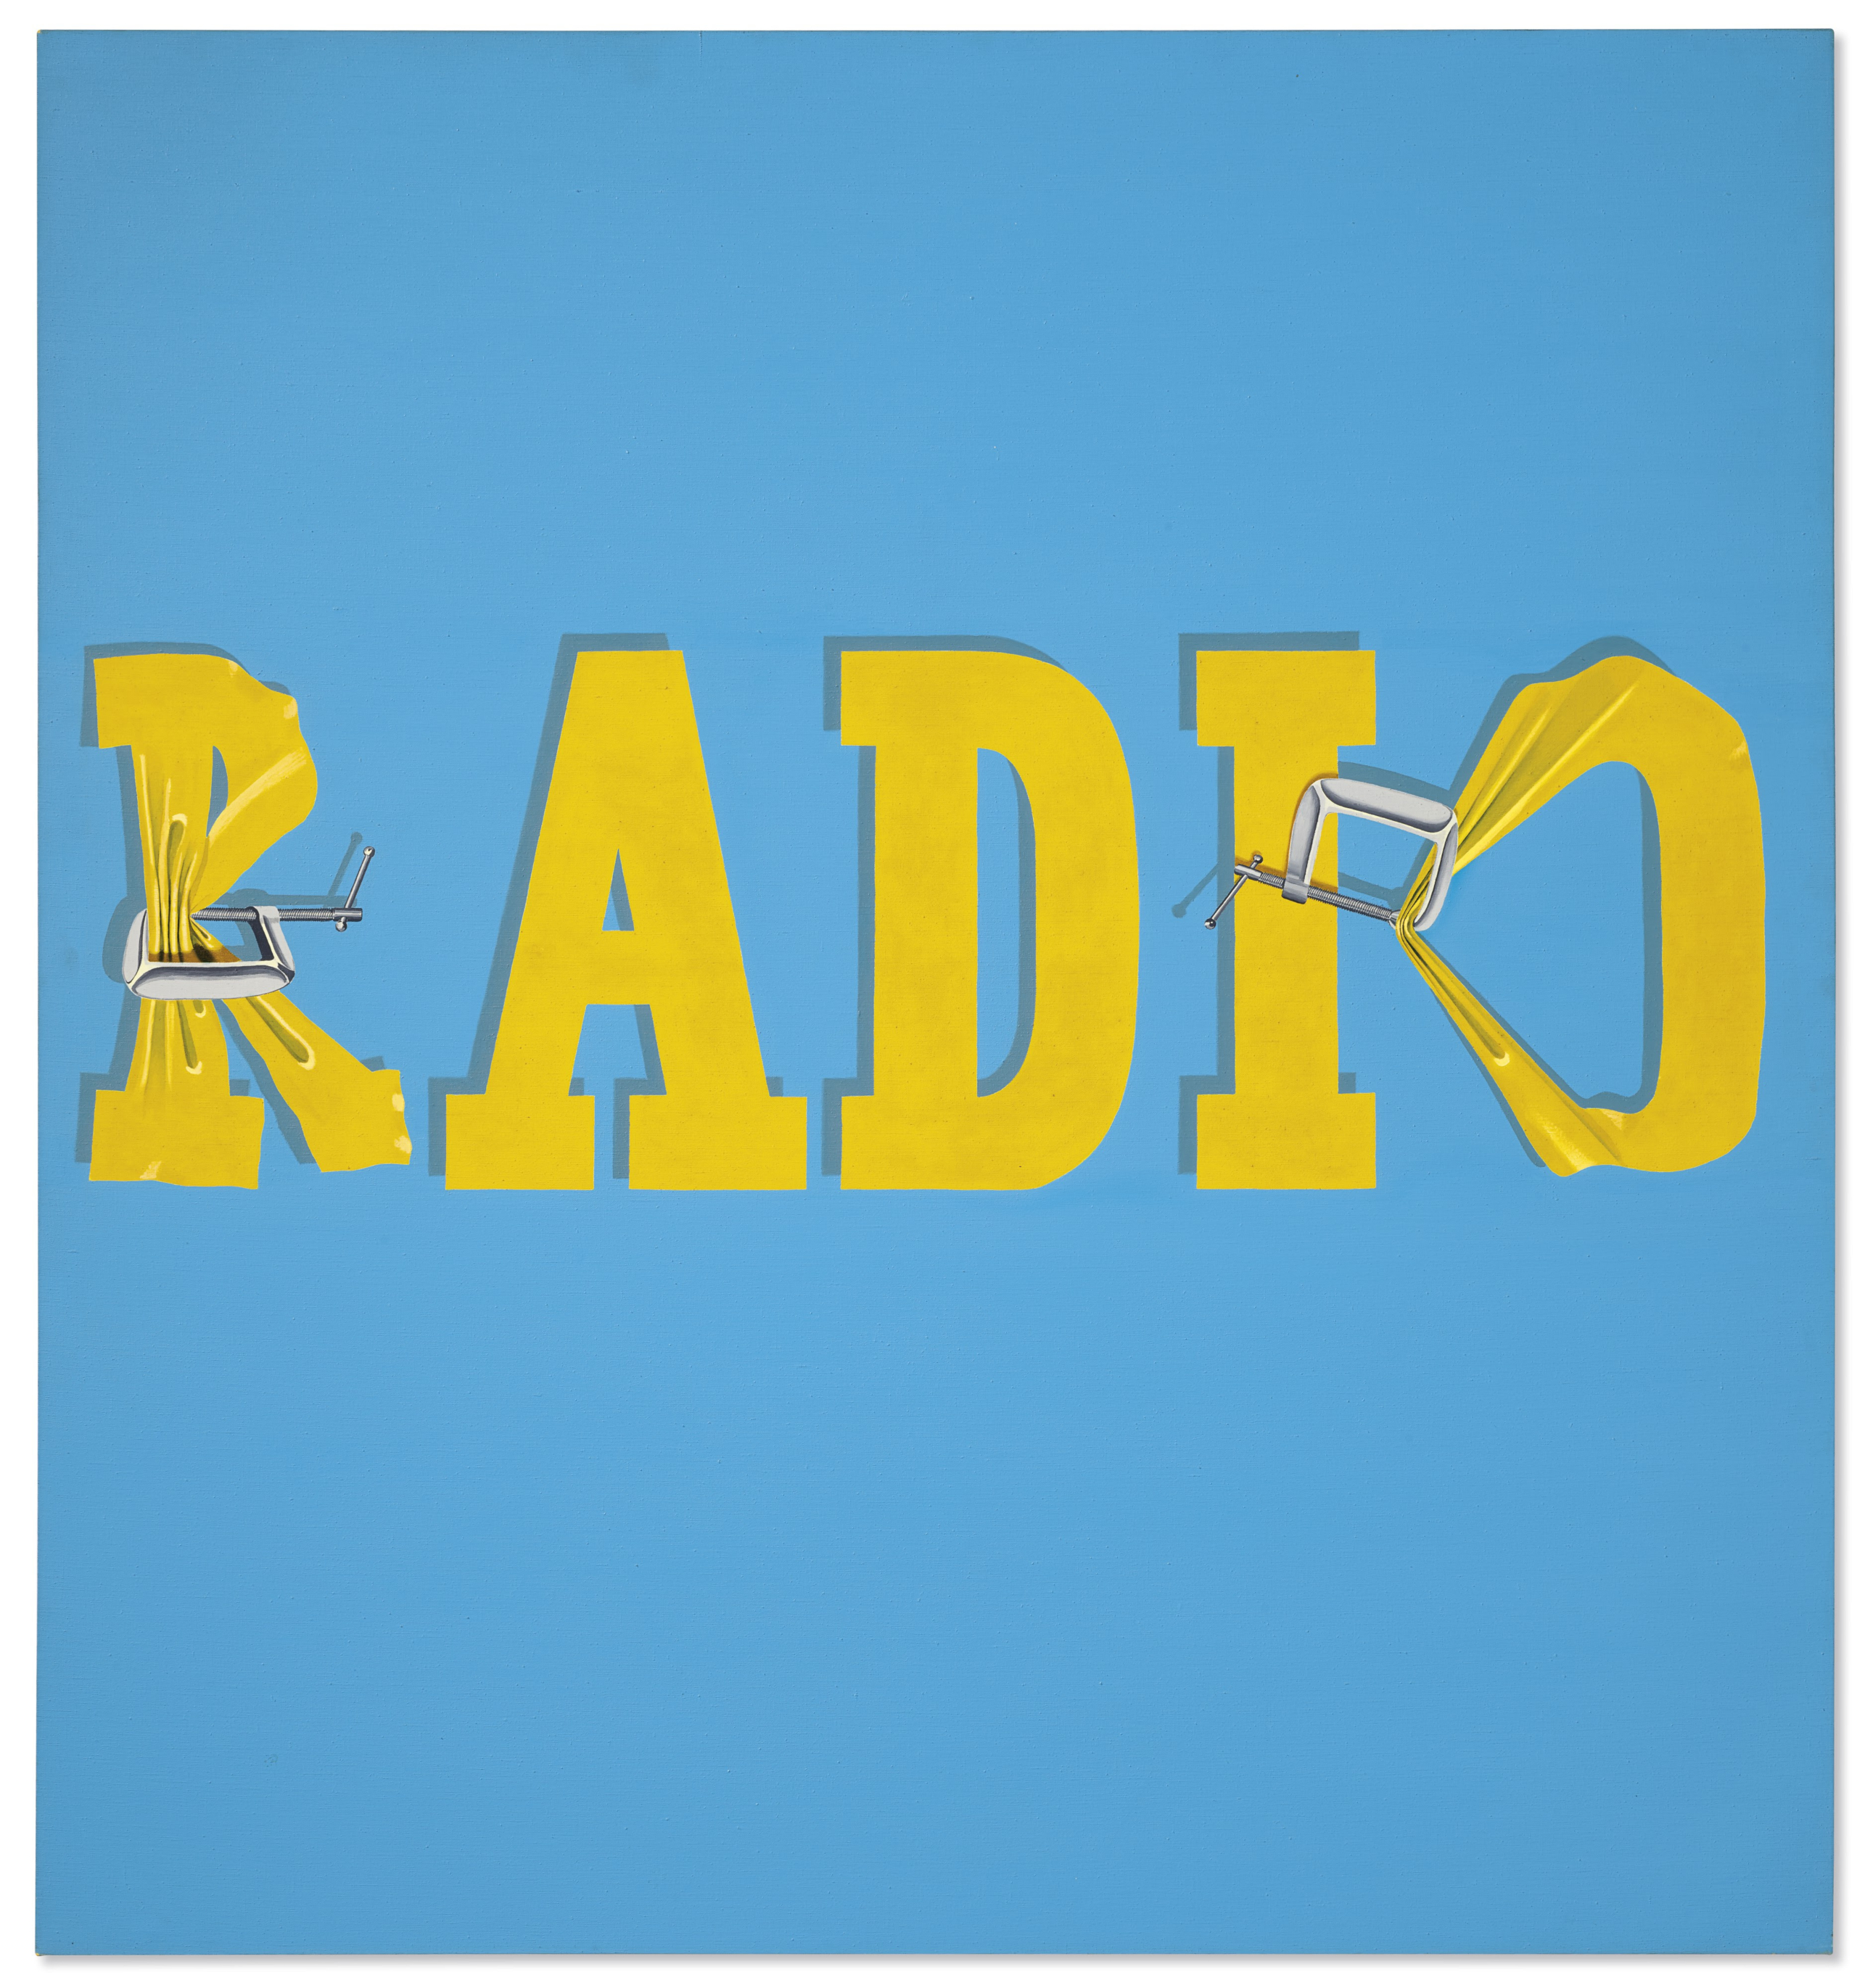 Christie's to auction Ed Ruscha's 'Hurting the Word Radio #2,' Nov. 13